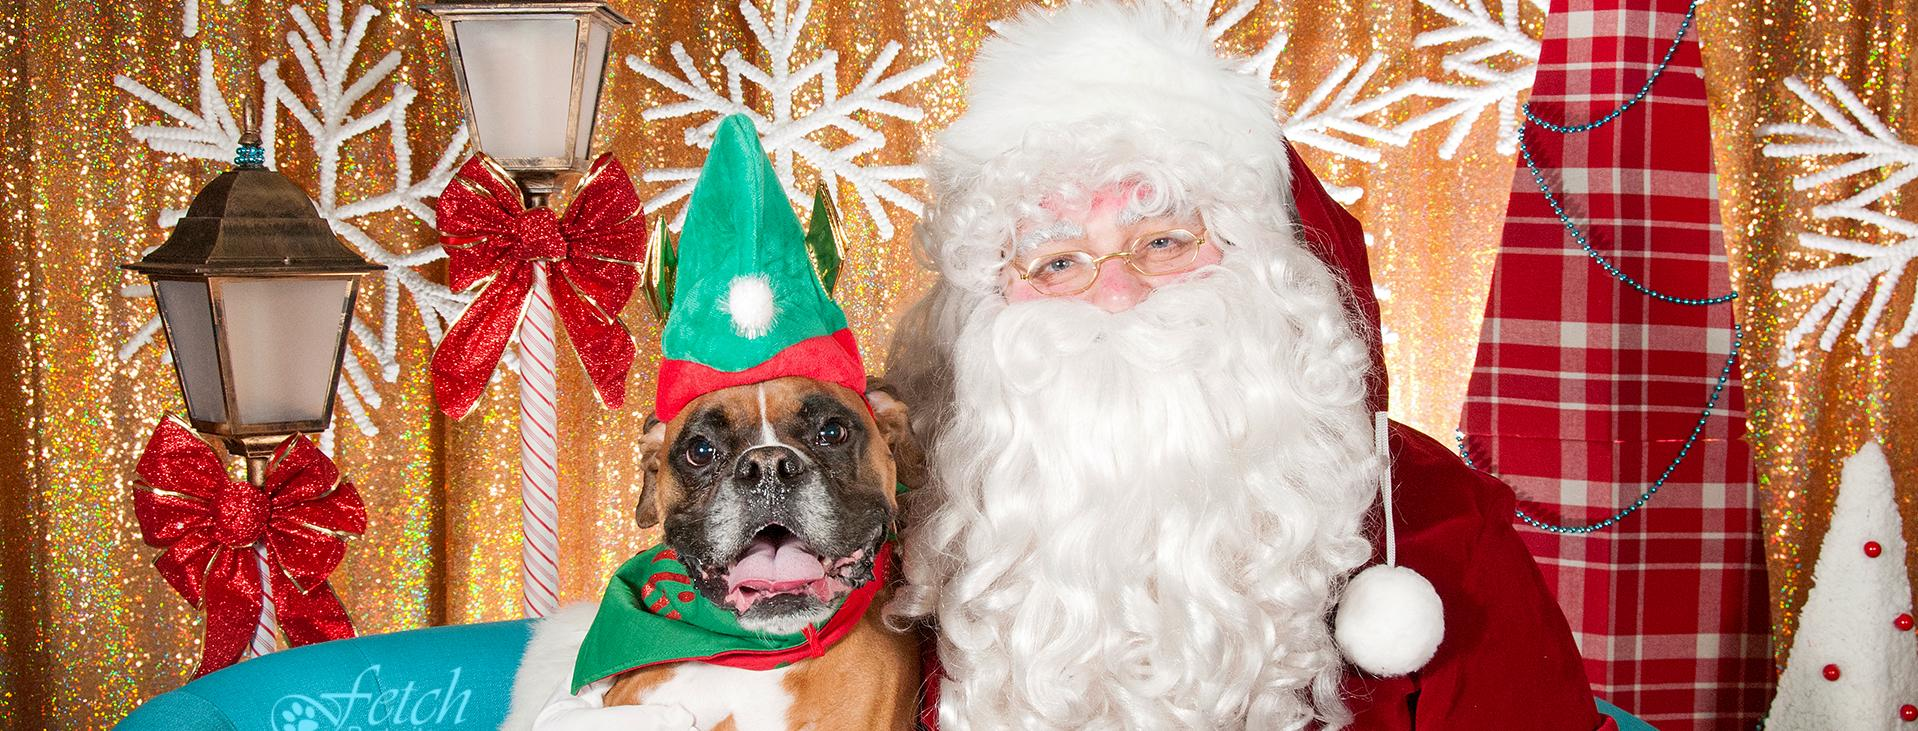 Brown and white boxer with a green elf hat on sitting next to santa